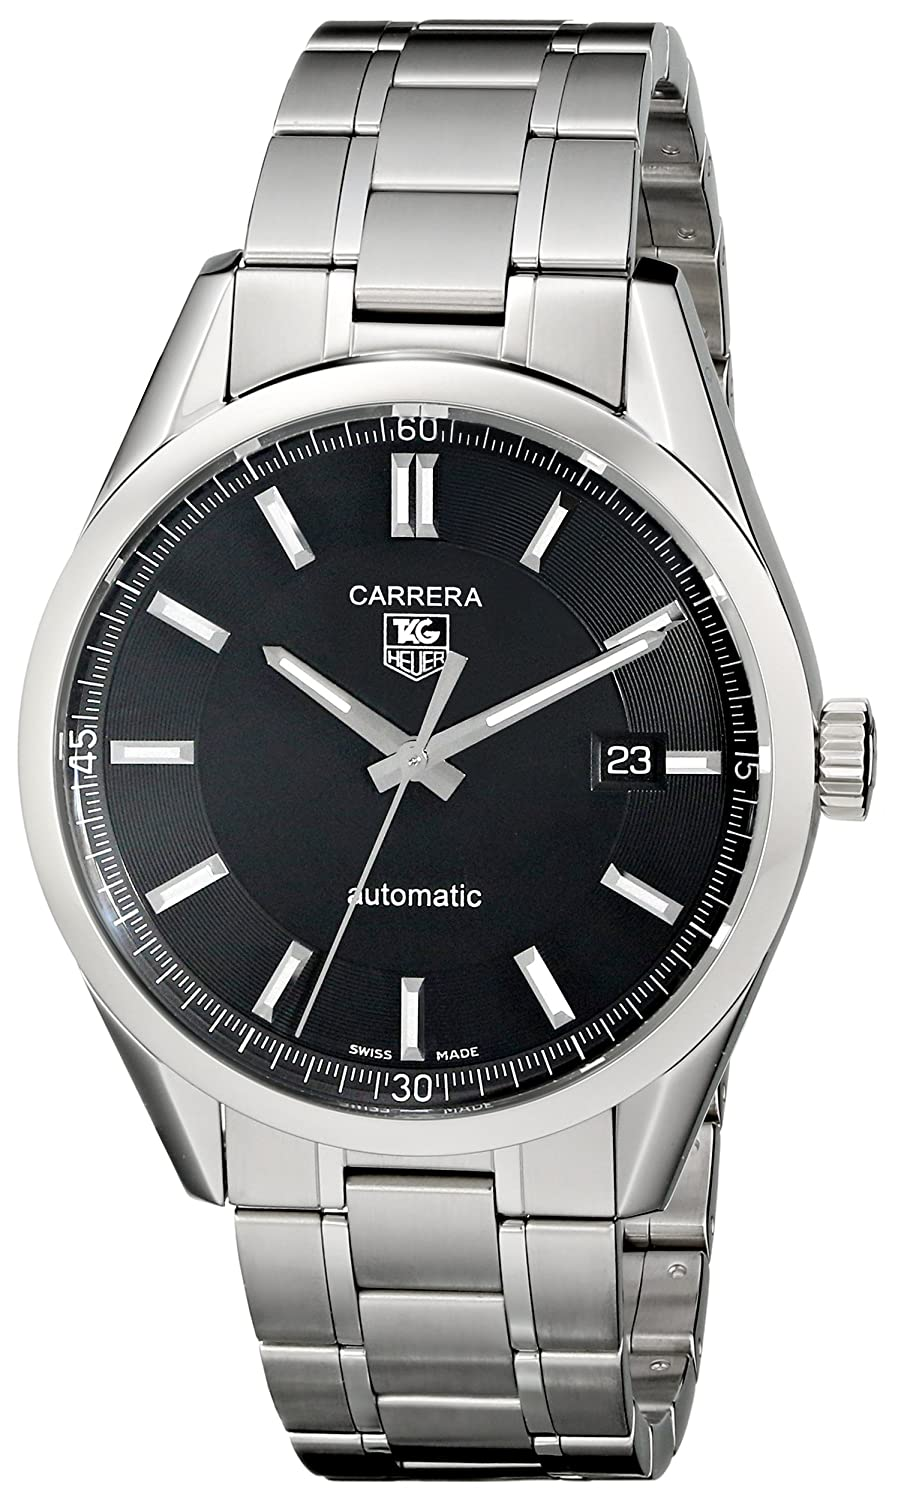 calibre online carrera tag heuer replica watch views in more chronograph watches men pakistan buy